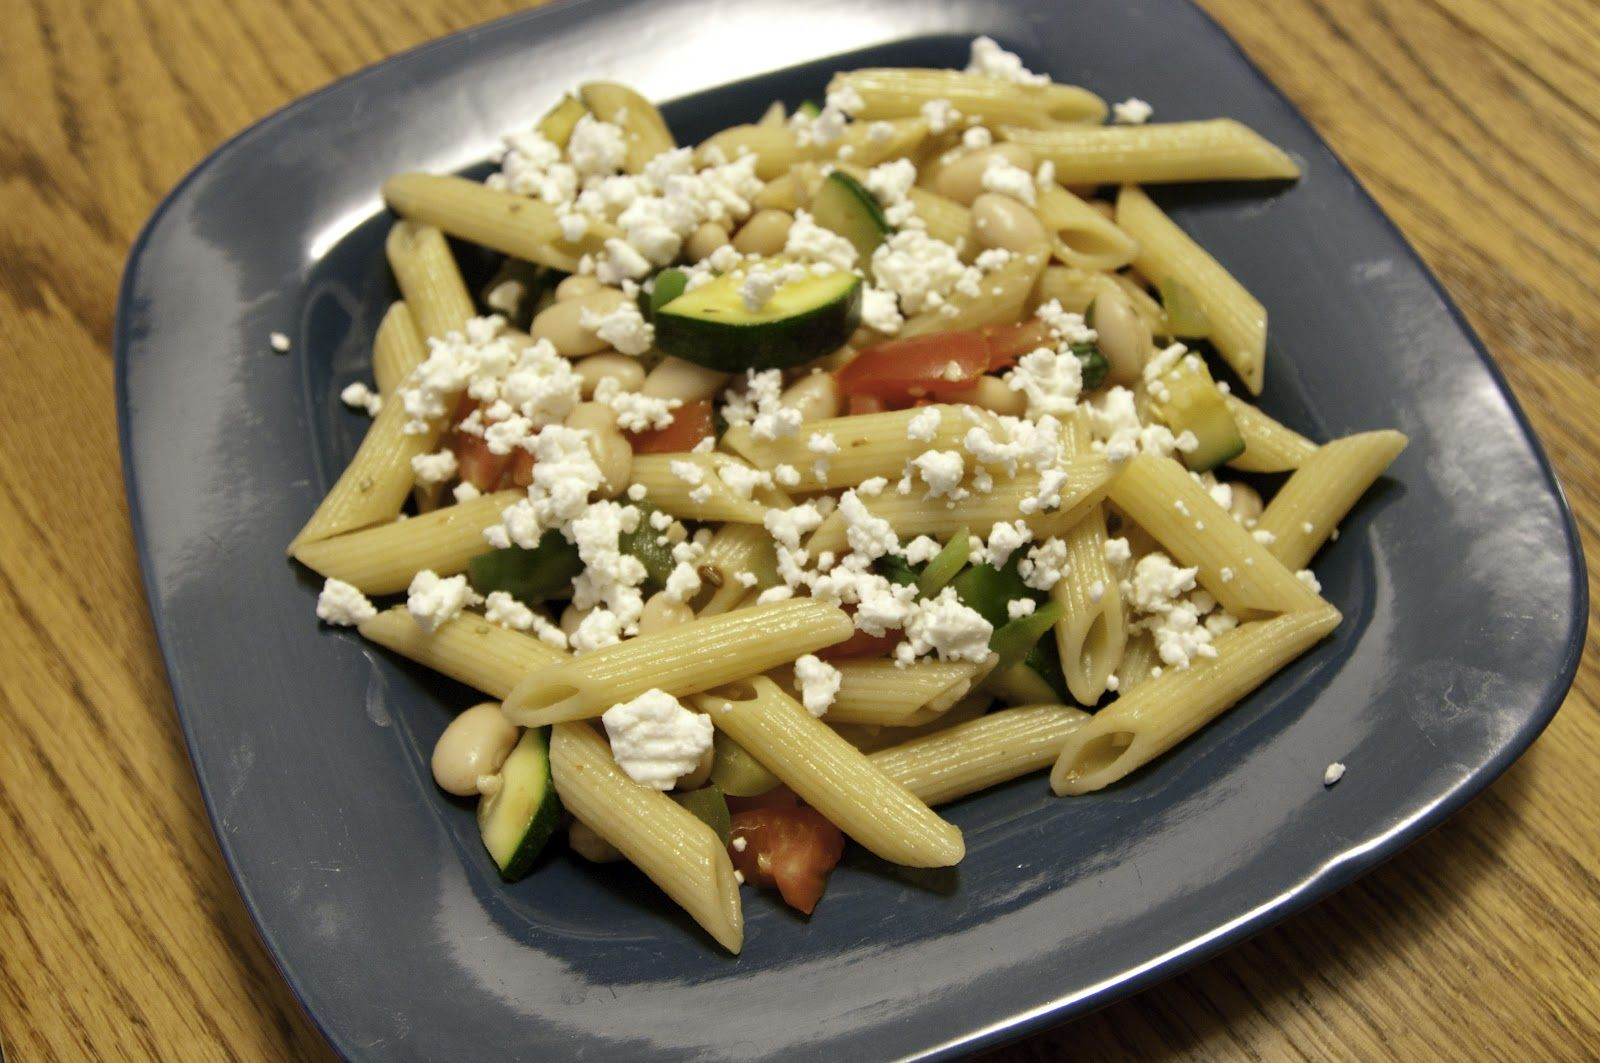 A Blog About Food: Mediterranean Vegetable, White Bean and Feta Penne